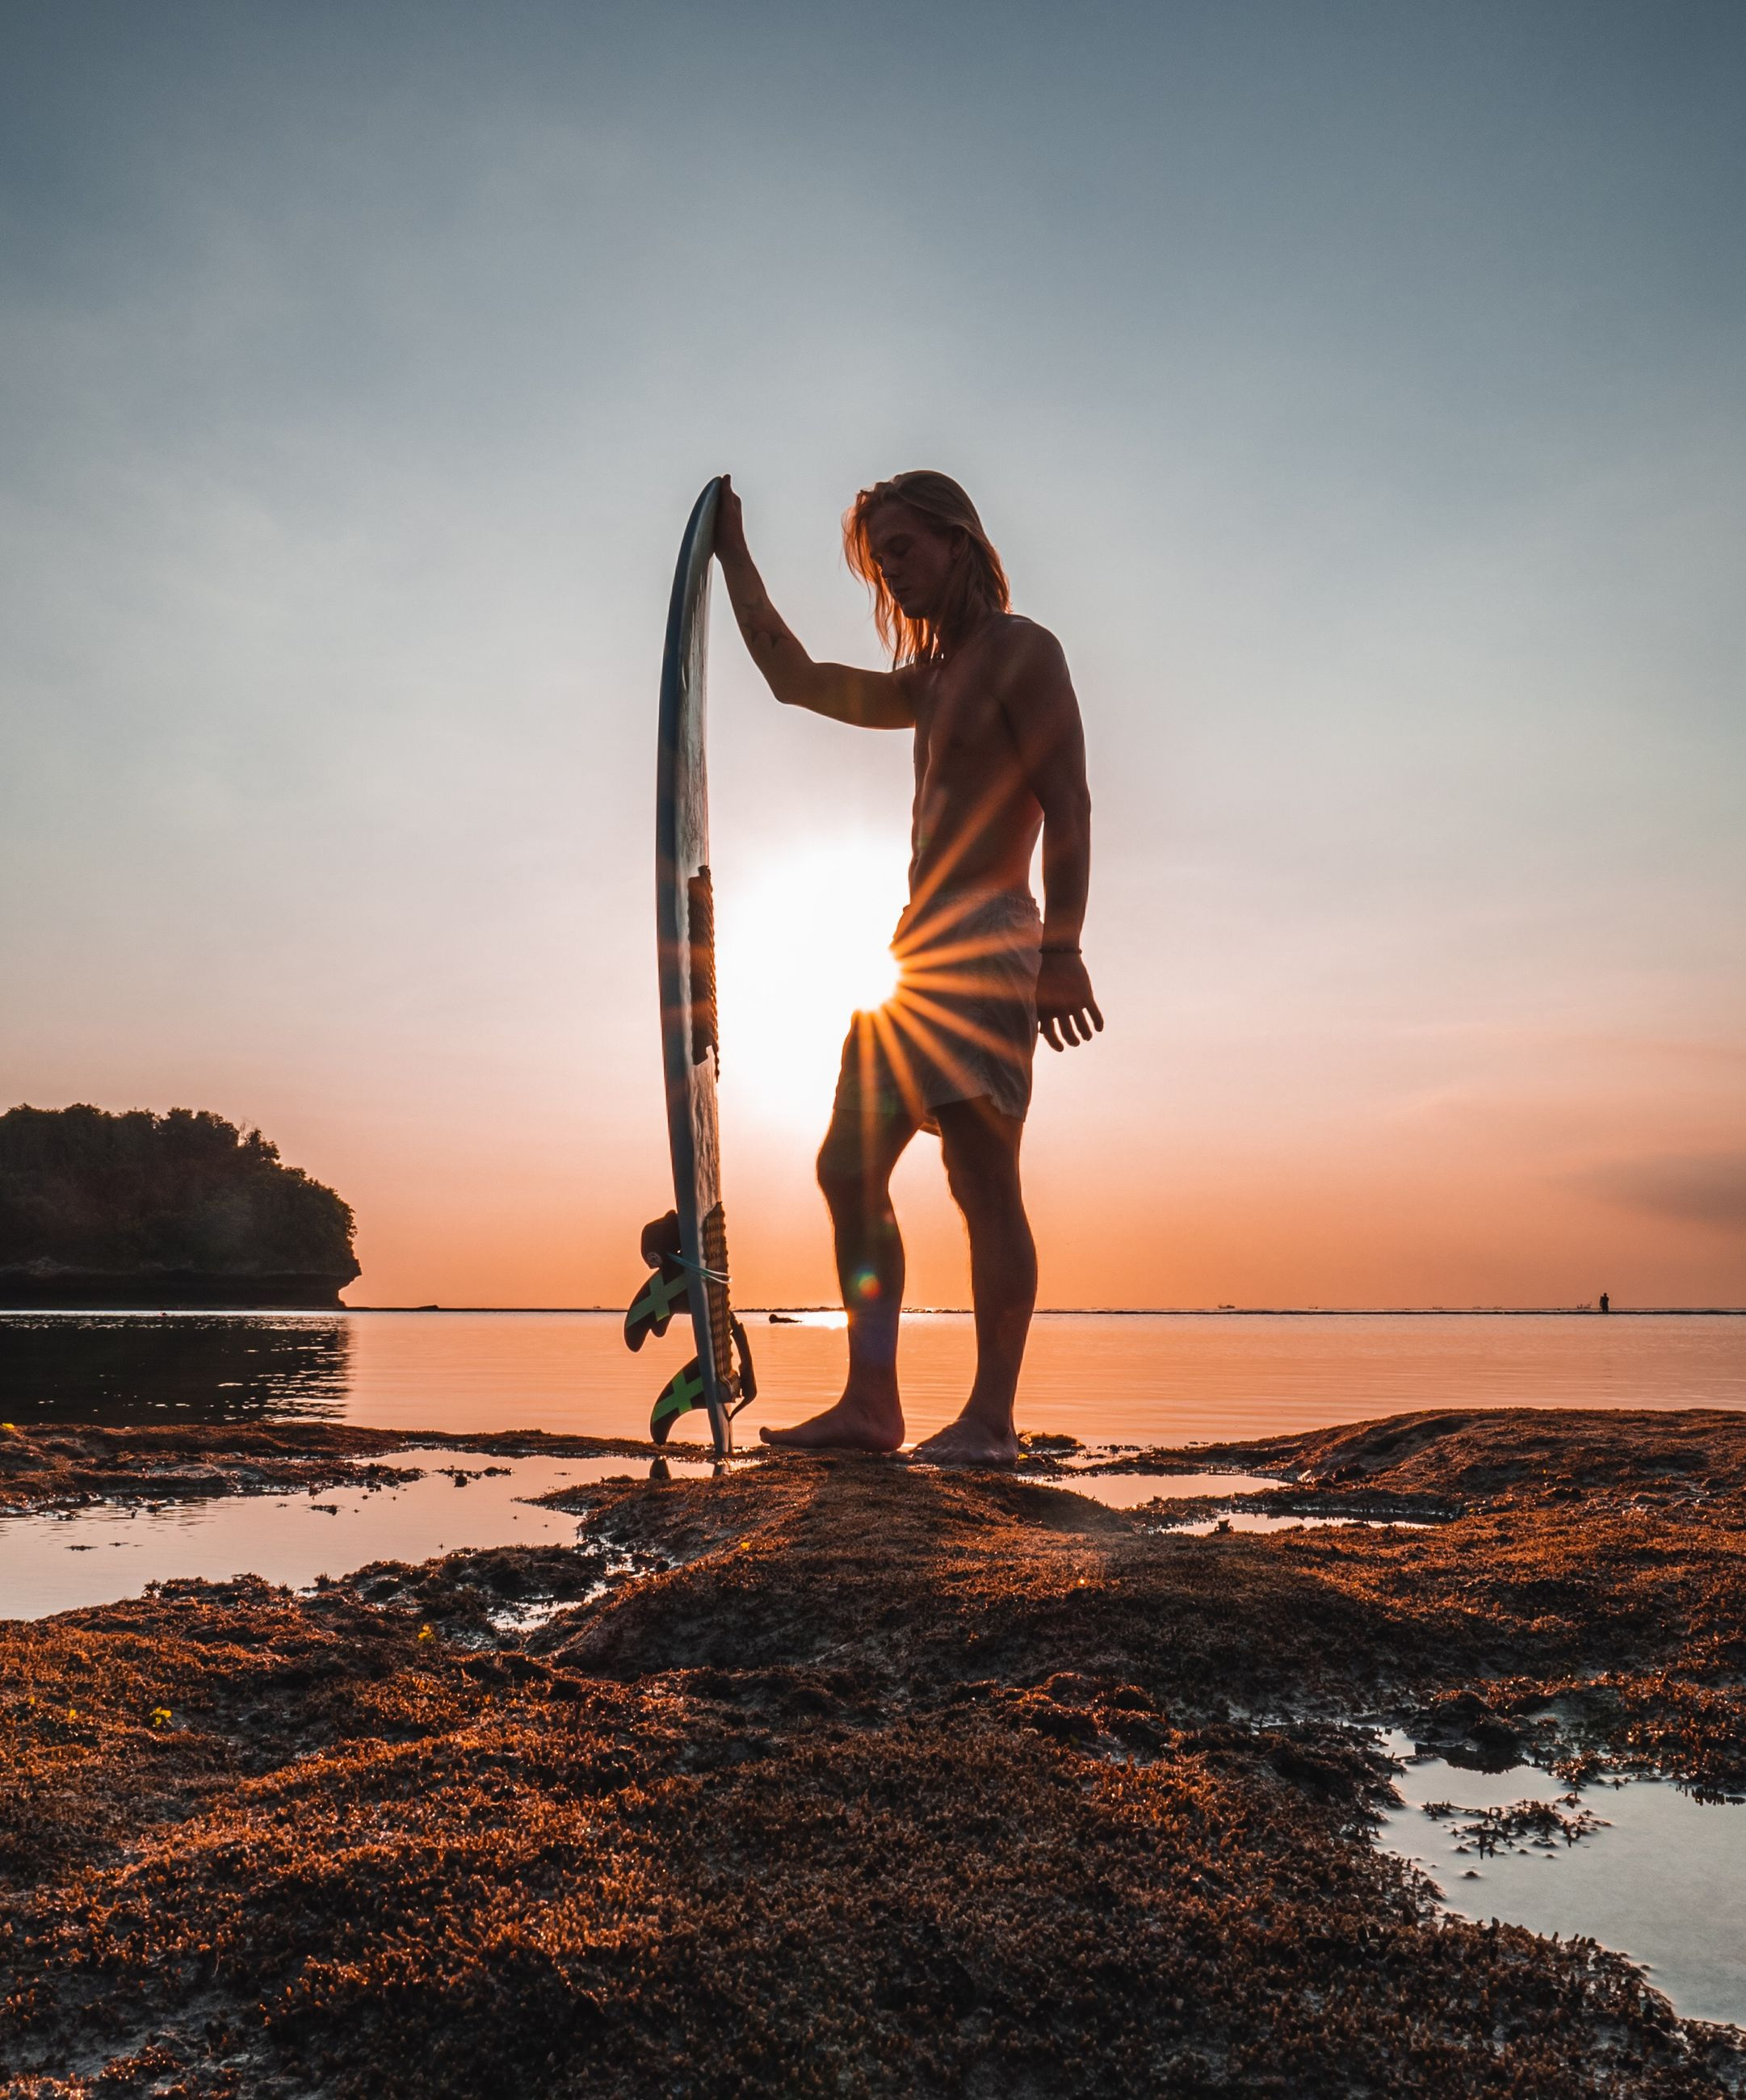 sky, sunset, water, sea, real people, beach, one person, beauty in nature, scenics - nature, land, leisure activity, nature, lifestyles, orange color, full length, standing, horizon over water, rock, outdoors